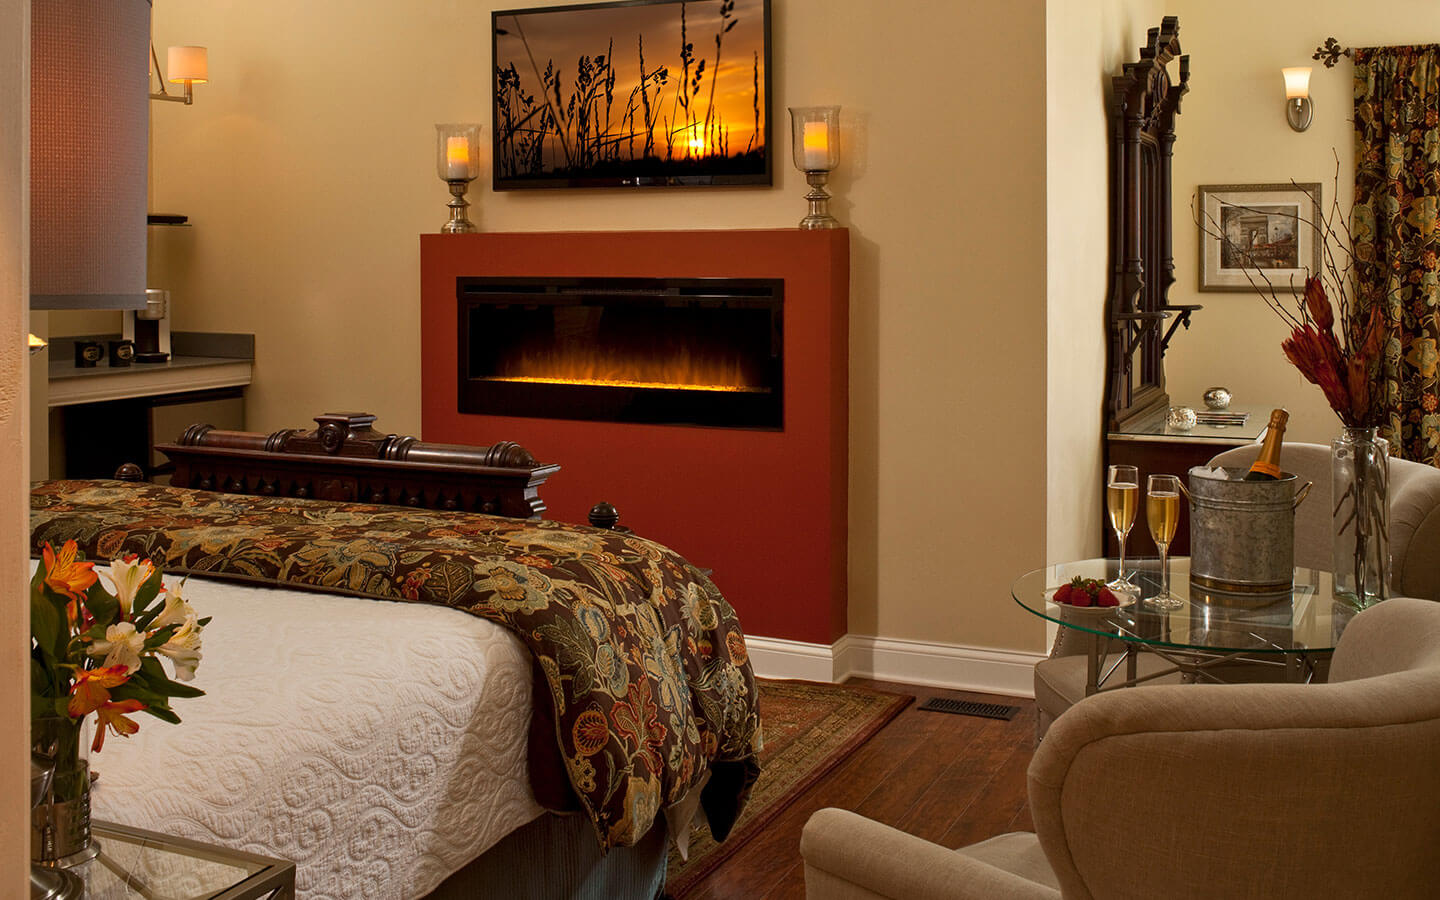 Room with a king size bed and seating area as well as a large fire plave and television